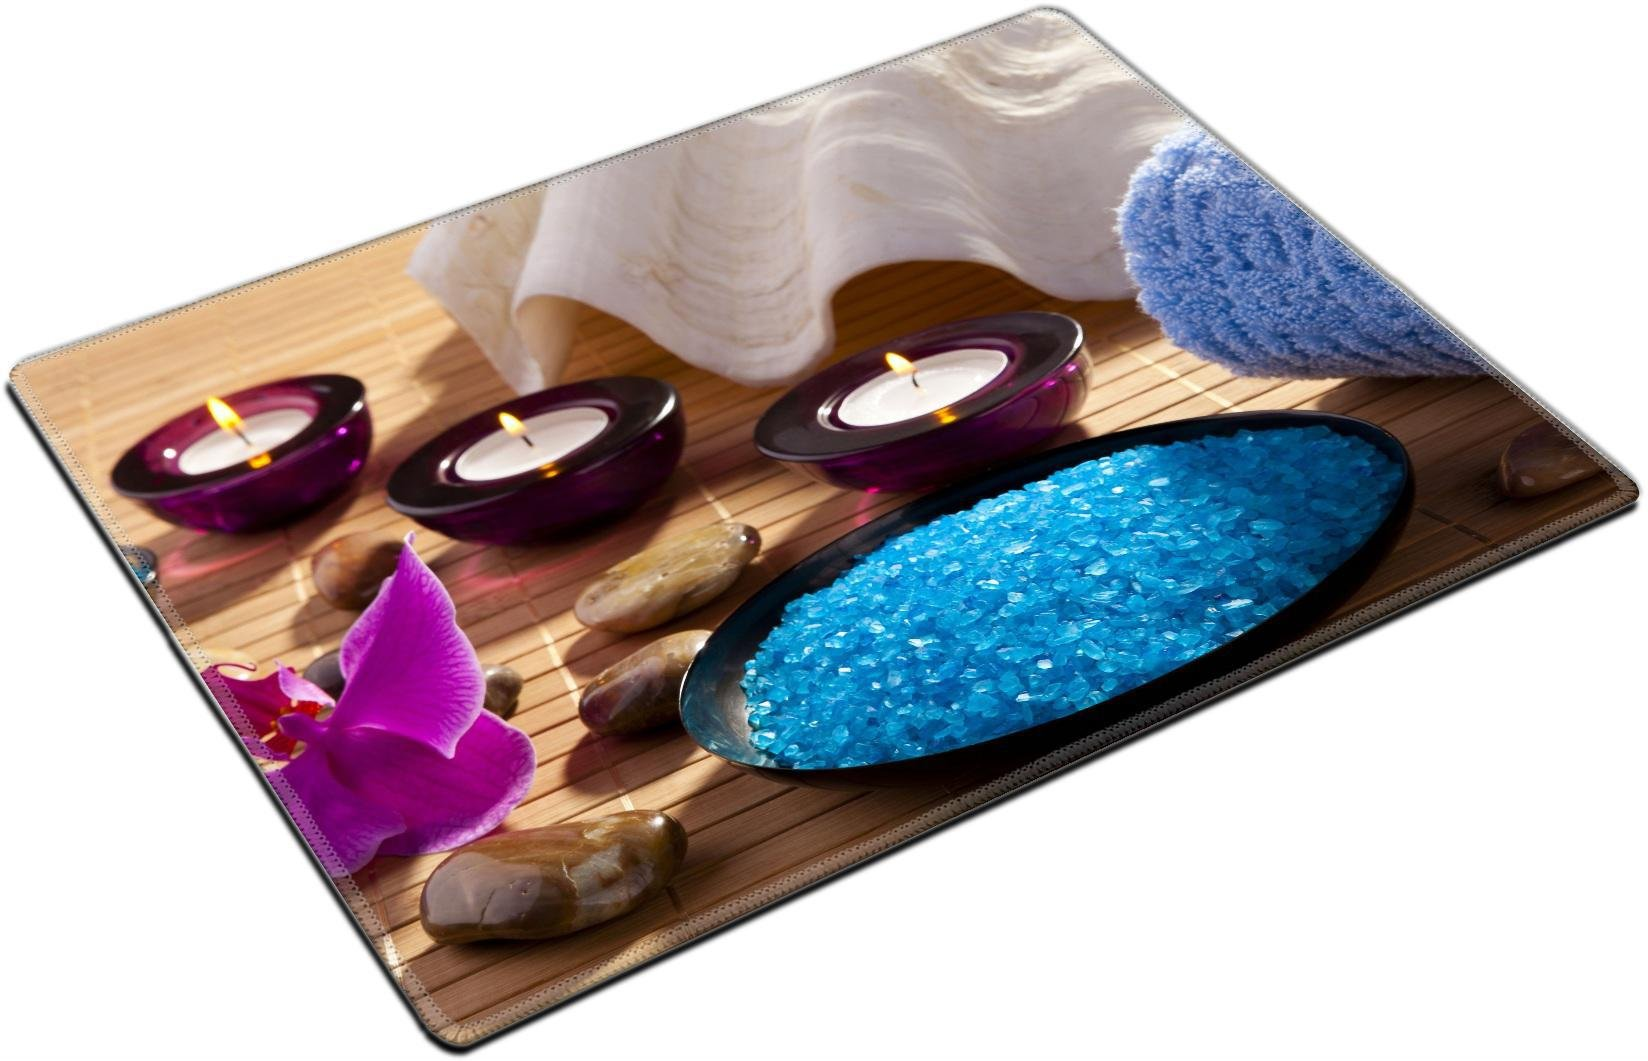 MSD Place Mat Non-Slip Natural Rubber Desk Pads Design: 37819130 Spa sea Salt Body Care Relaxation Candles Flavored